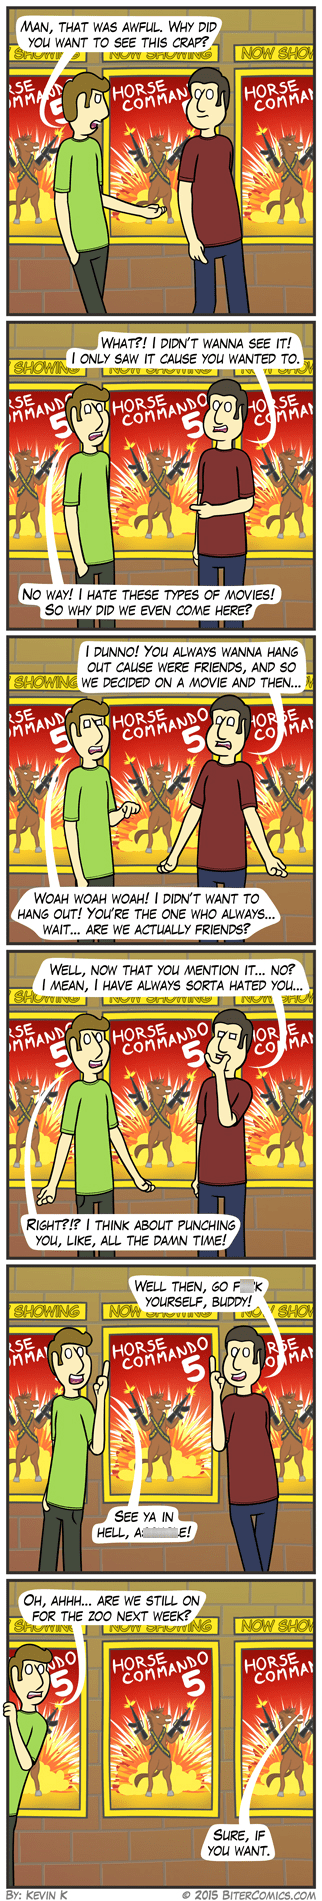 friendship web comics - 8590571008